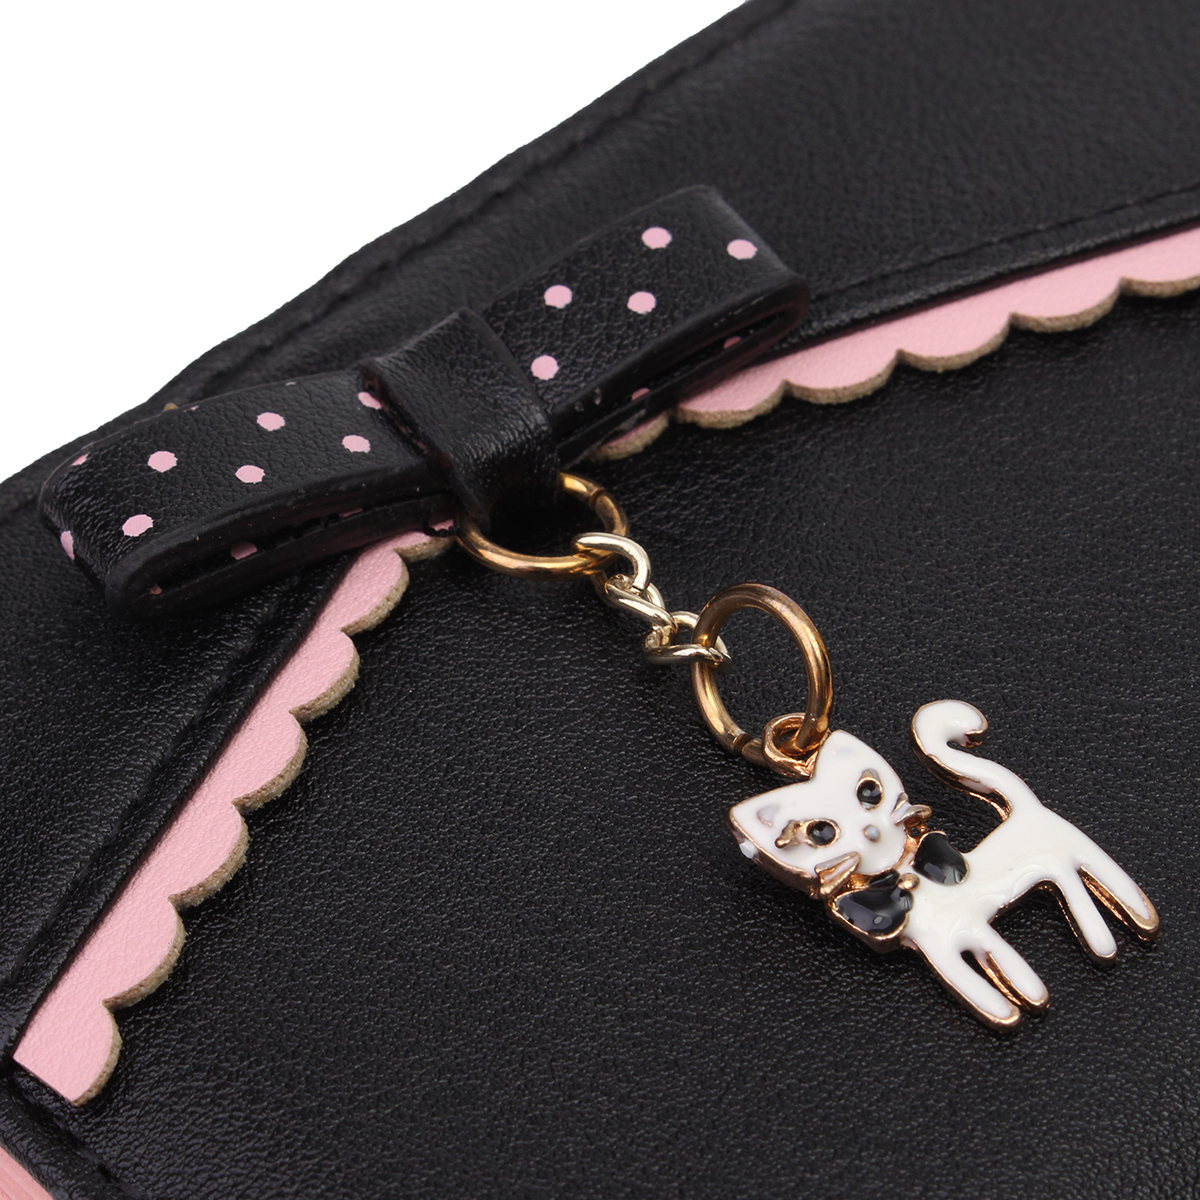 carteira da forma das senhoras Wallet Estilo 1 : Women Wallet Cute Cat